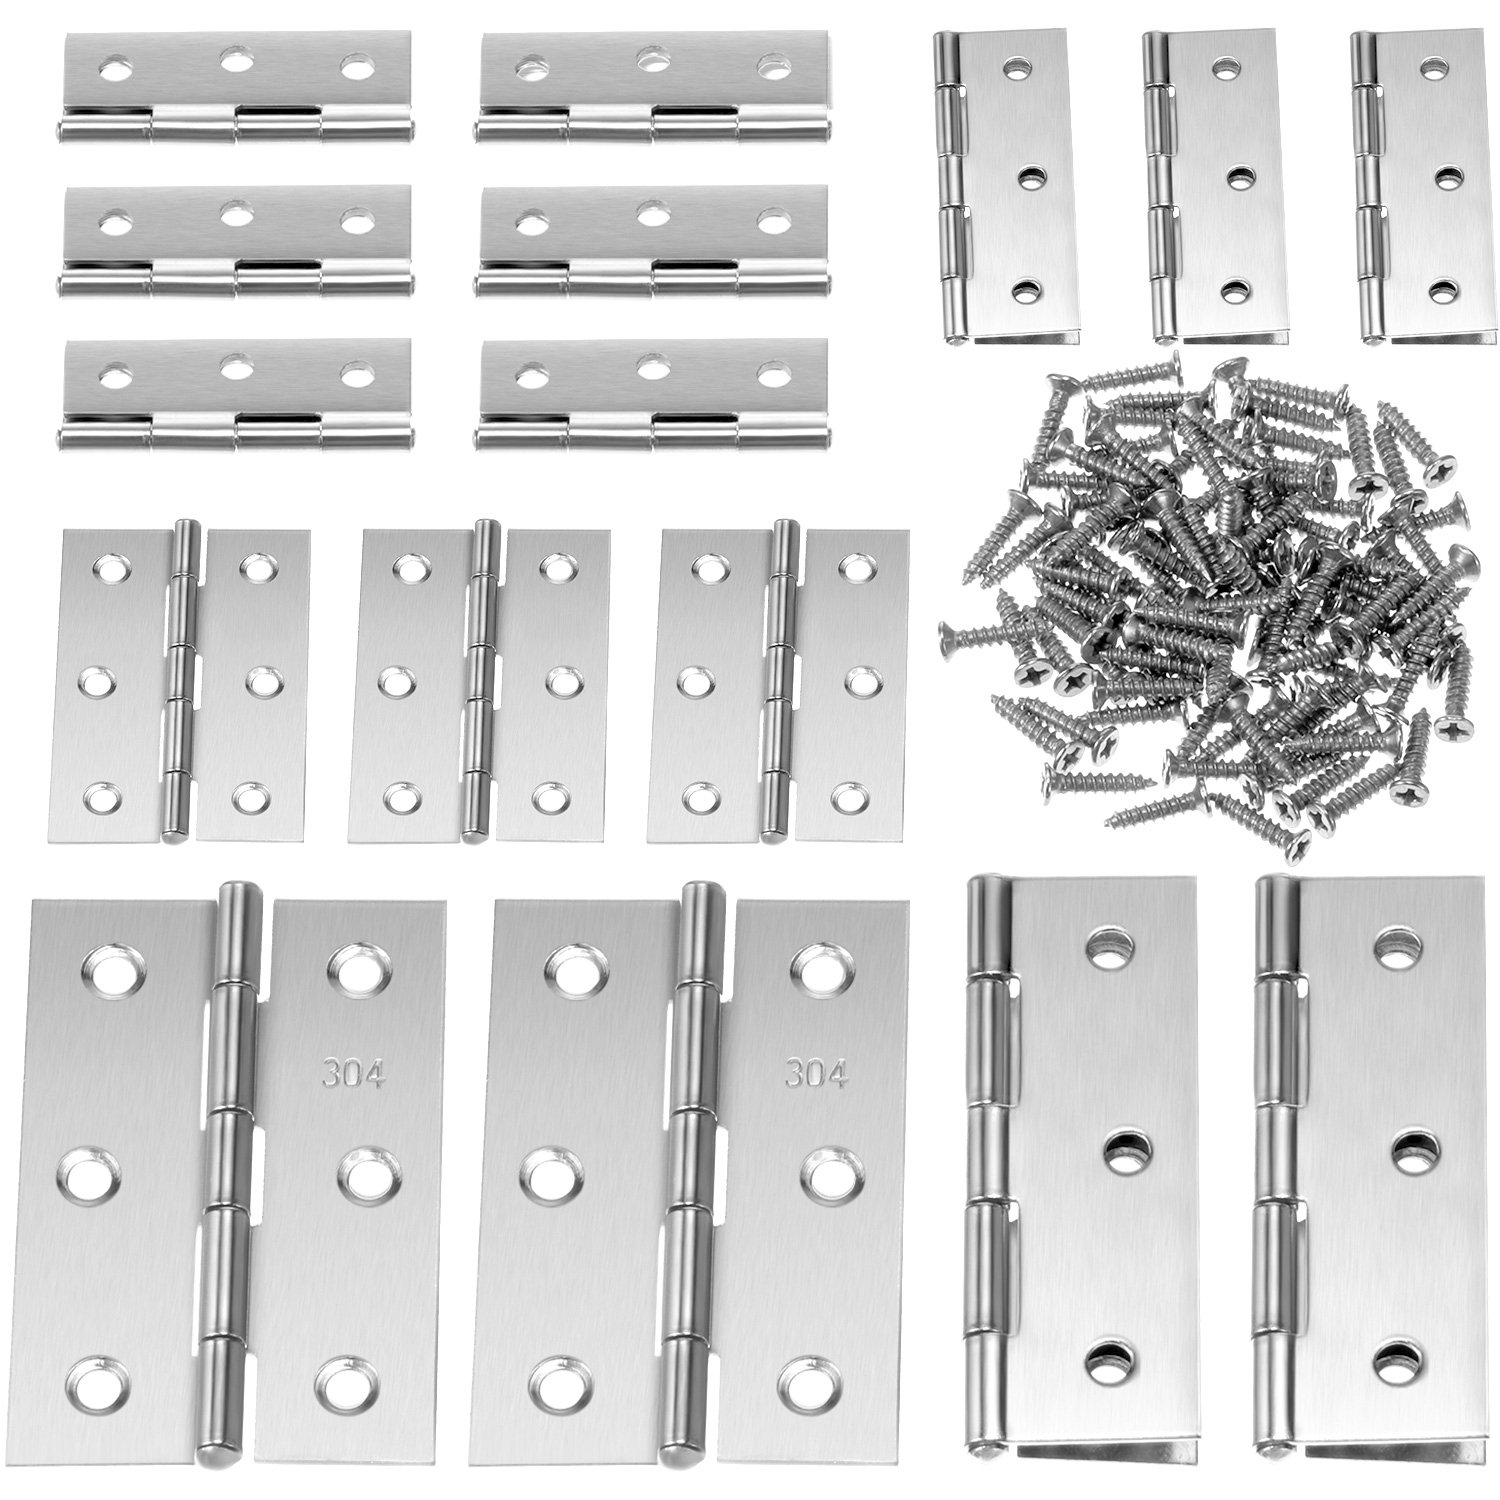 BOAO 16 Pieces 2 inch and 3 inch Stainless Steel Folding Butt Hinges Silver Tone Home Furniture Hardware Door Hinge with 96 Pieces Stainless Steel Screws